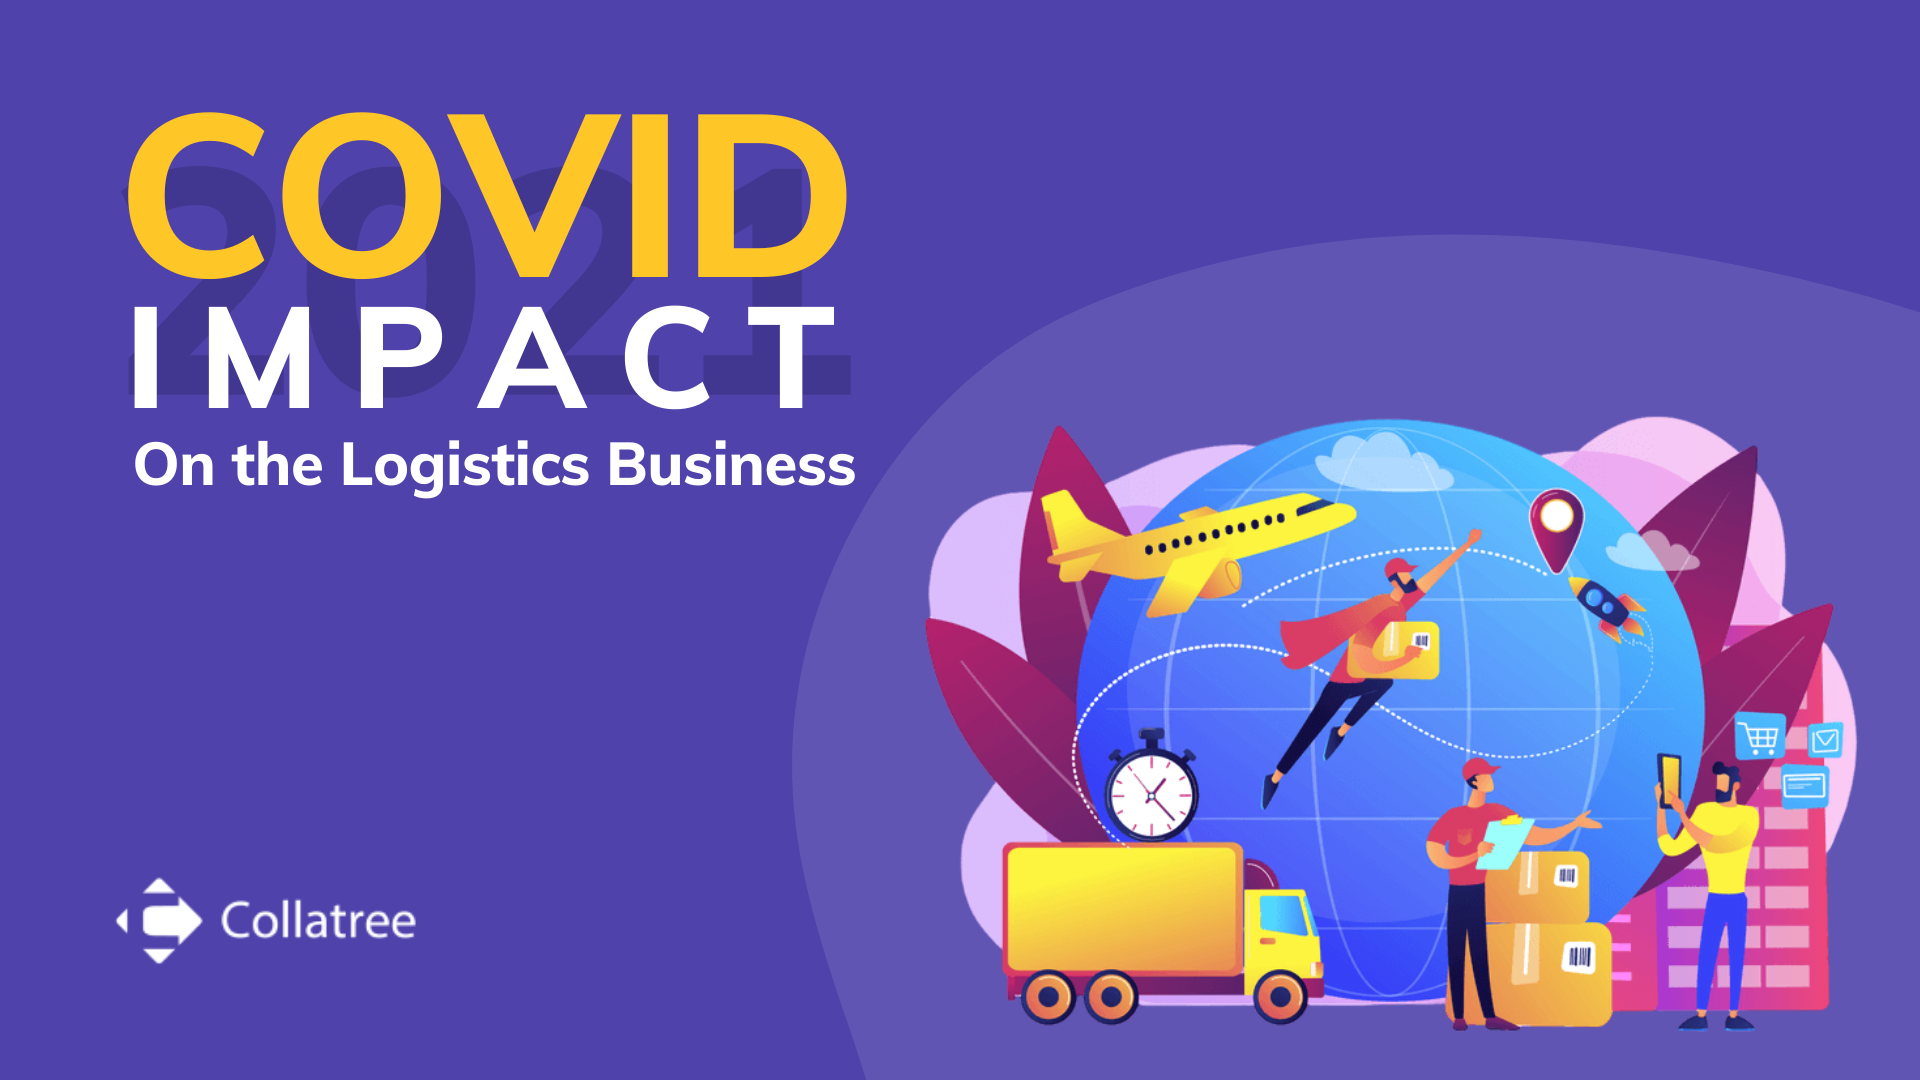 COVID 19 Impact on the Logistics Business